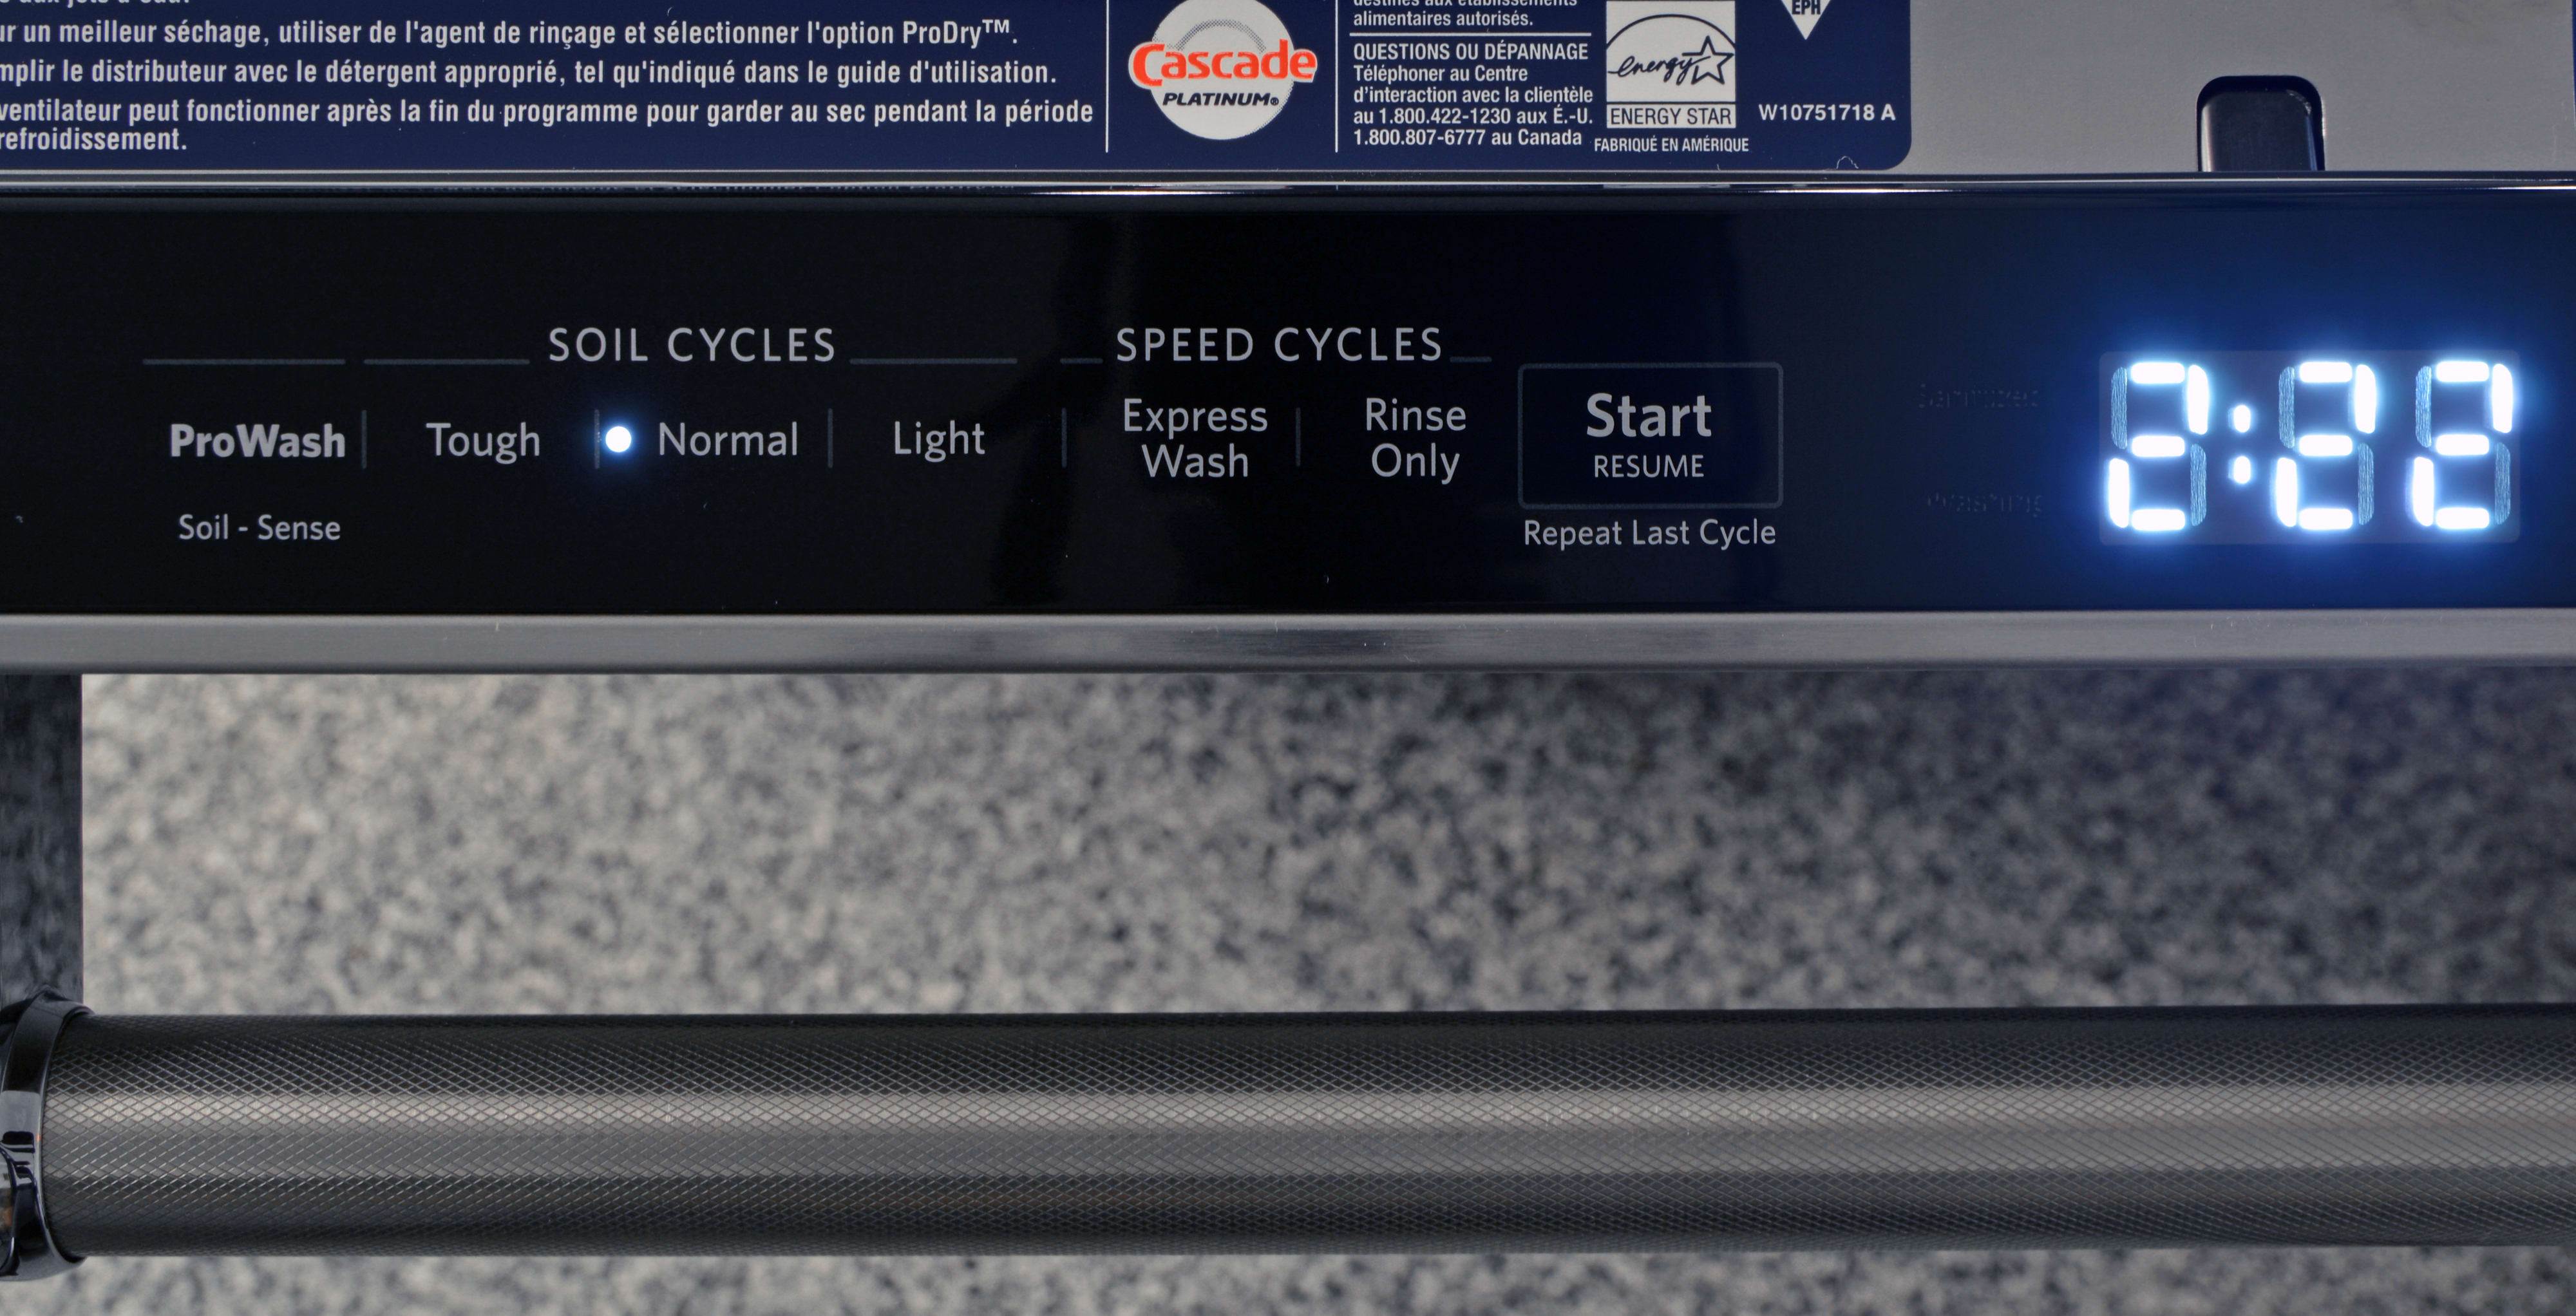 Cycle selection portion of the control panel